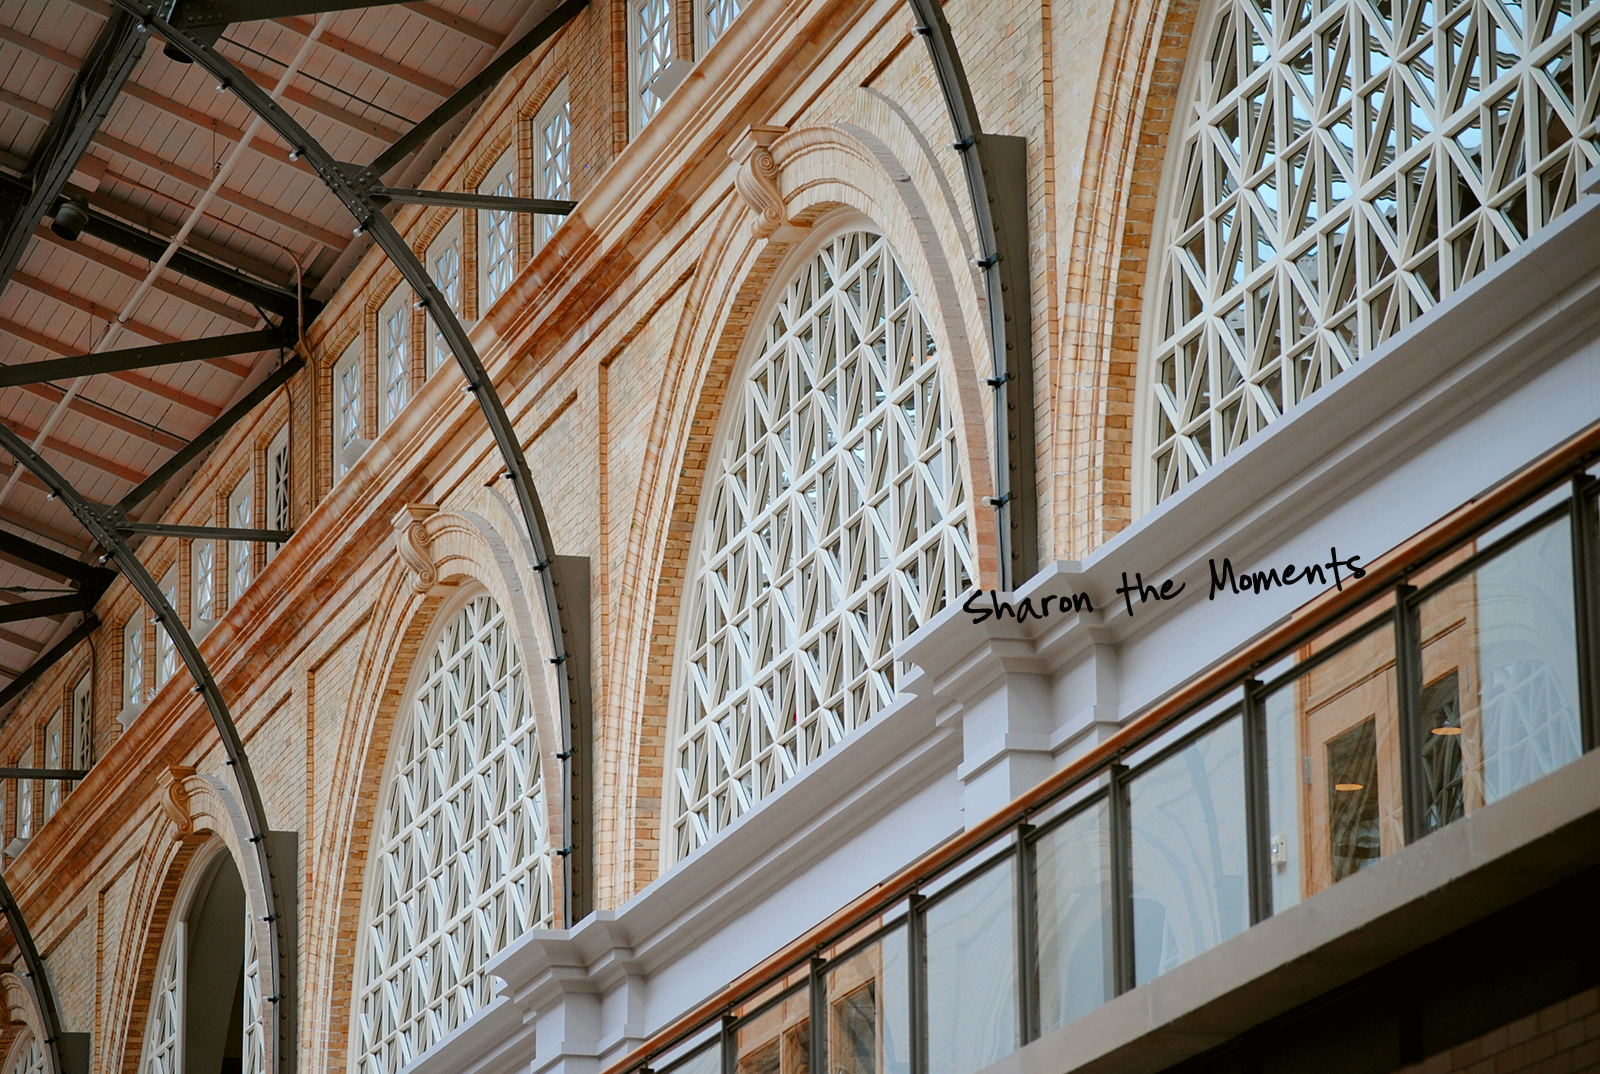 Favorite Photo Friday San Francisco Ferry Building|Sharon the Moments blog